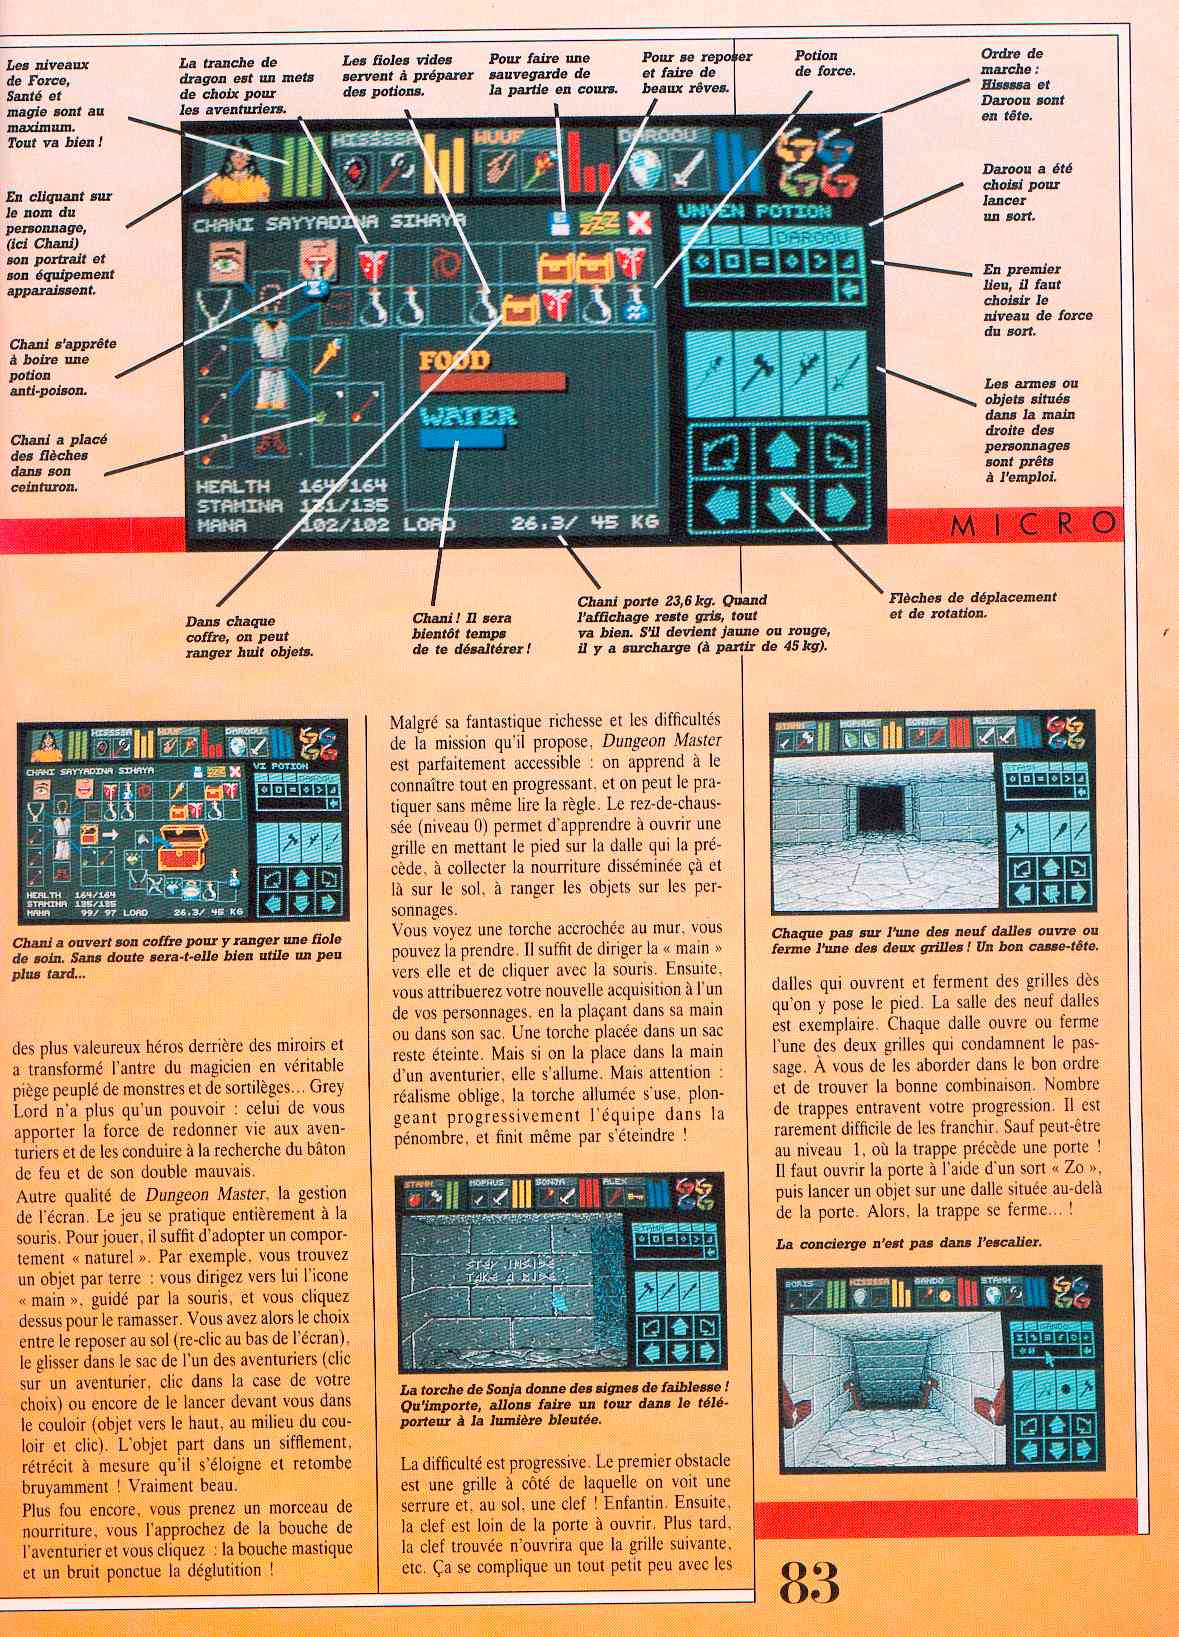 Dungeon Master guide published in French magazine 'Jeux et Stratégies', Issue #51, June 1998, Page 83